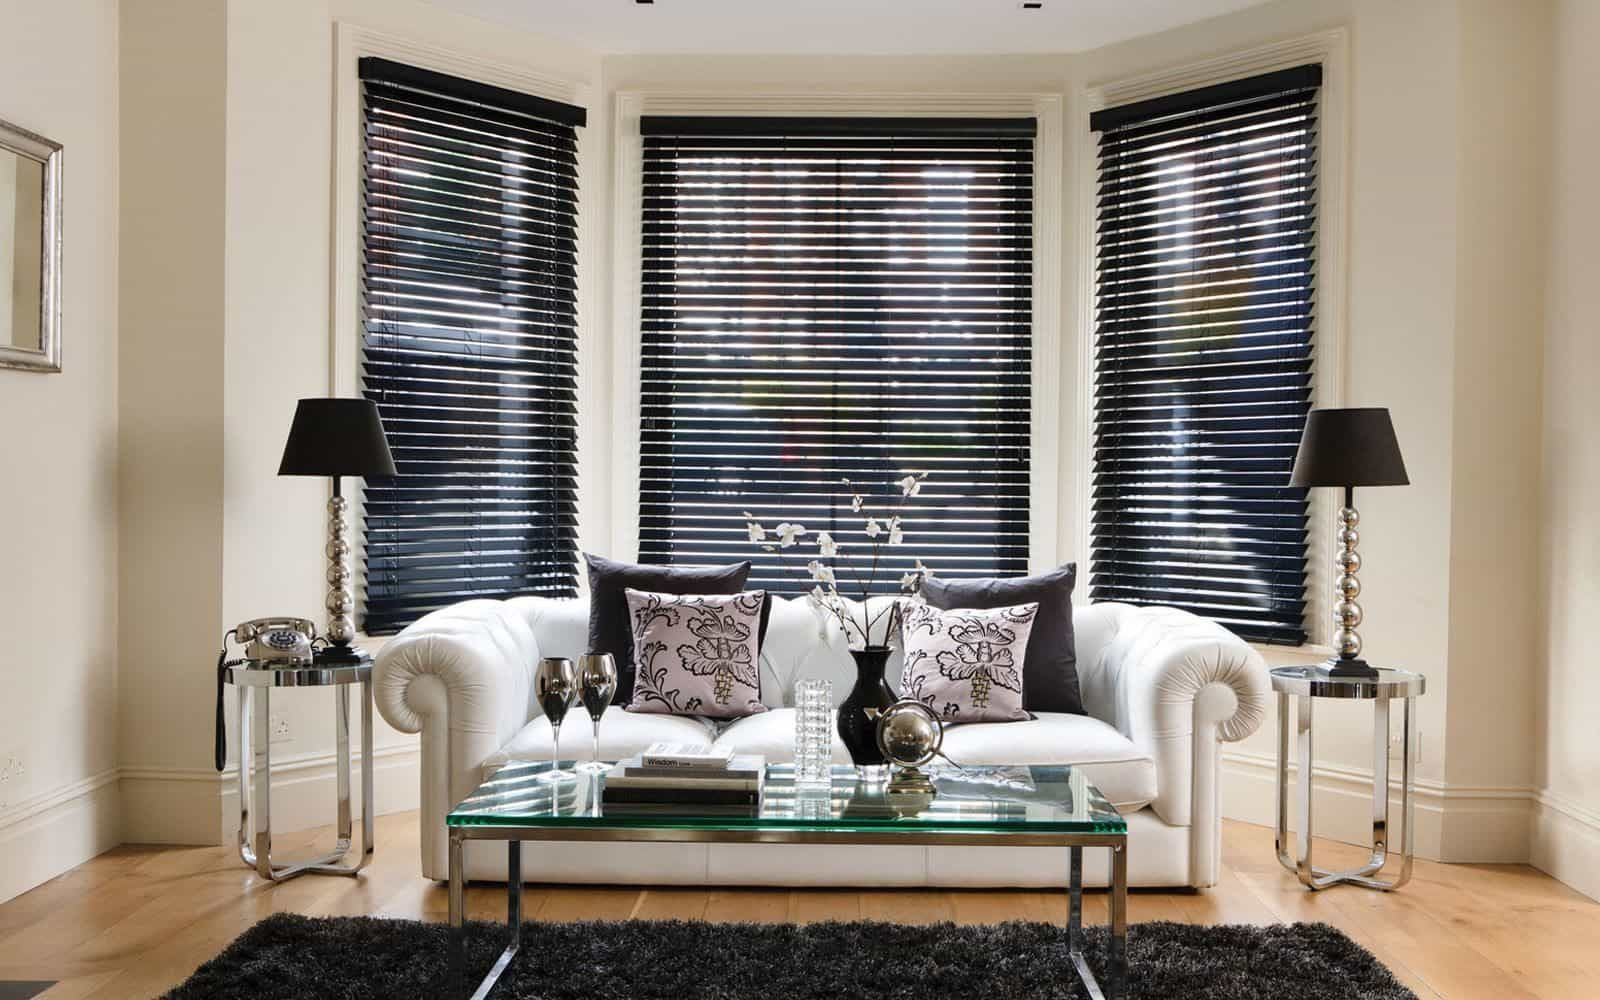 Fantastic And Good Bay Window Blinds En 2020 Avec Images Store Venitien Store Bois Store Aluminium